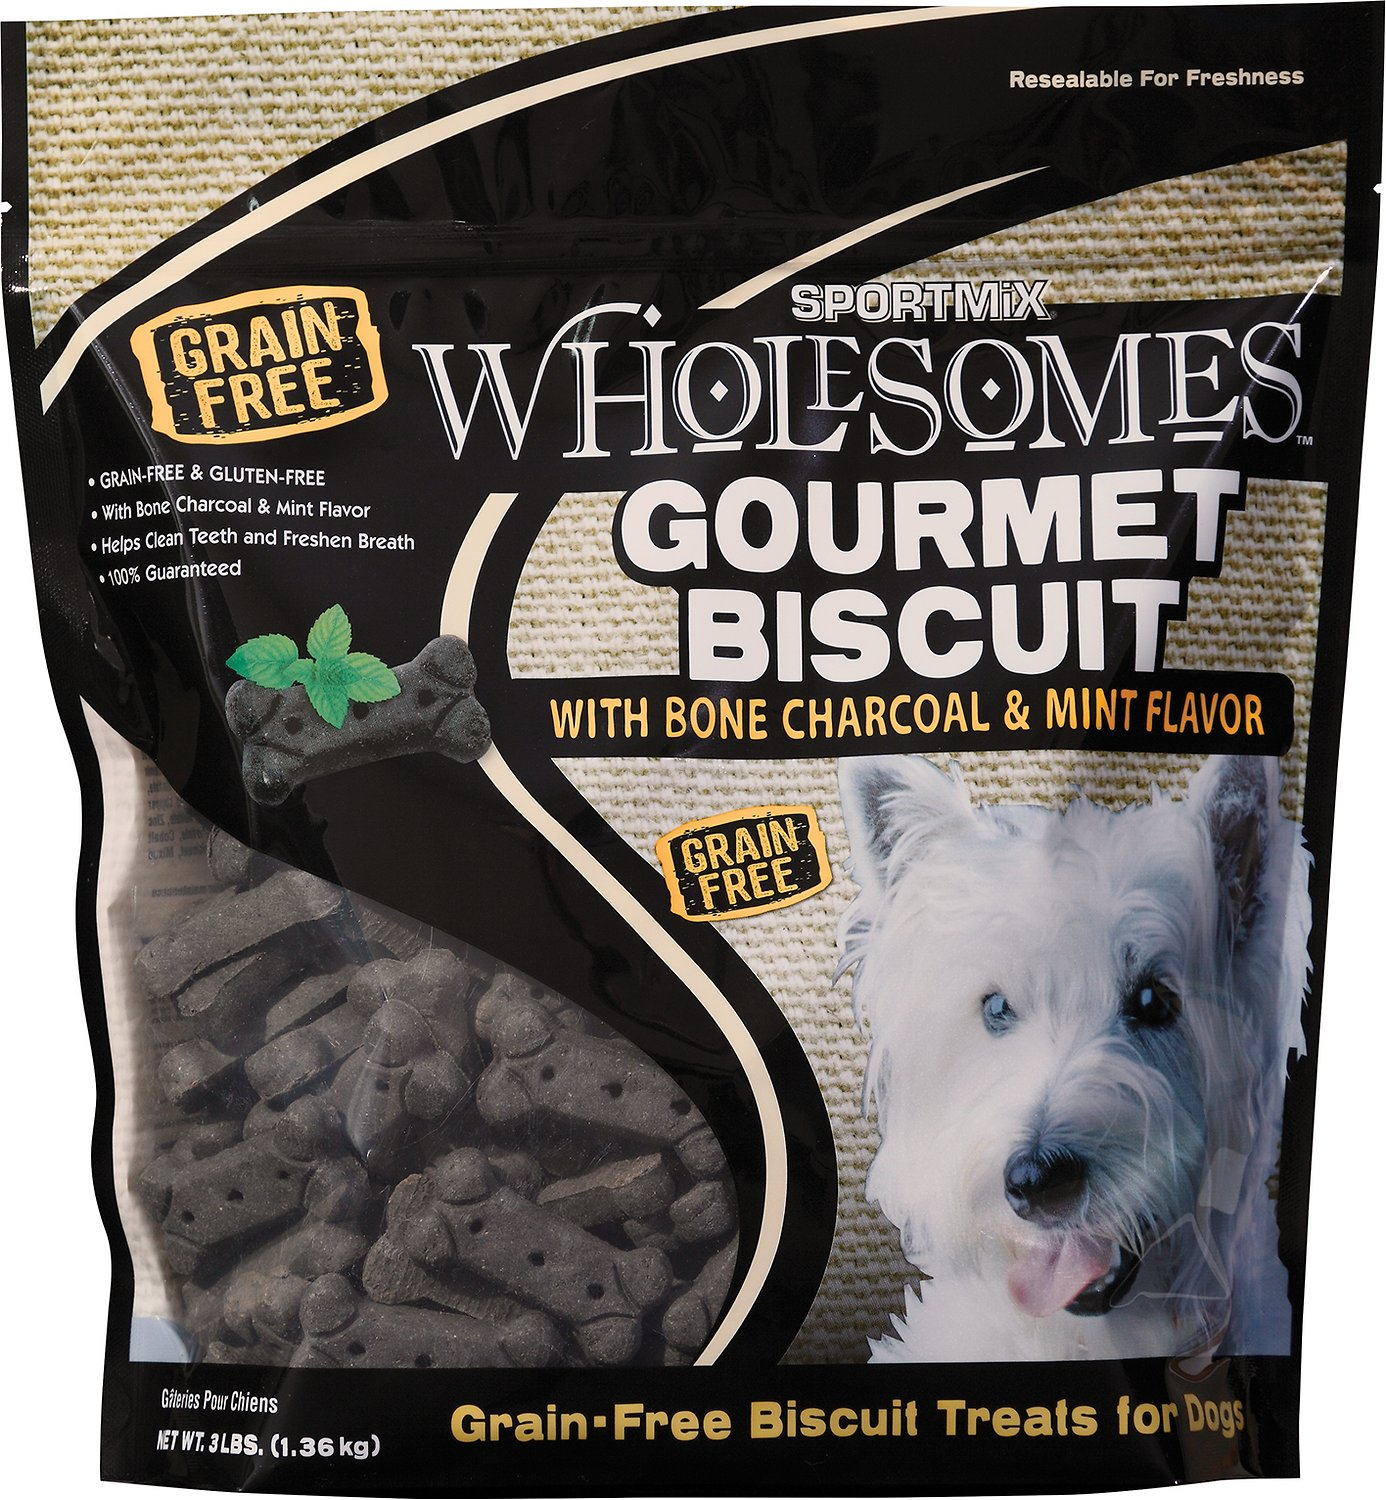 SPORTMiX Wholesomes Grain-Free Premium Medium Gourmet Biscuit with Natural Bone Charcoal & Mint Flavor Dog Treats Image